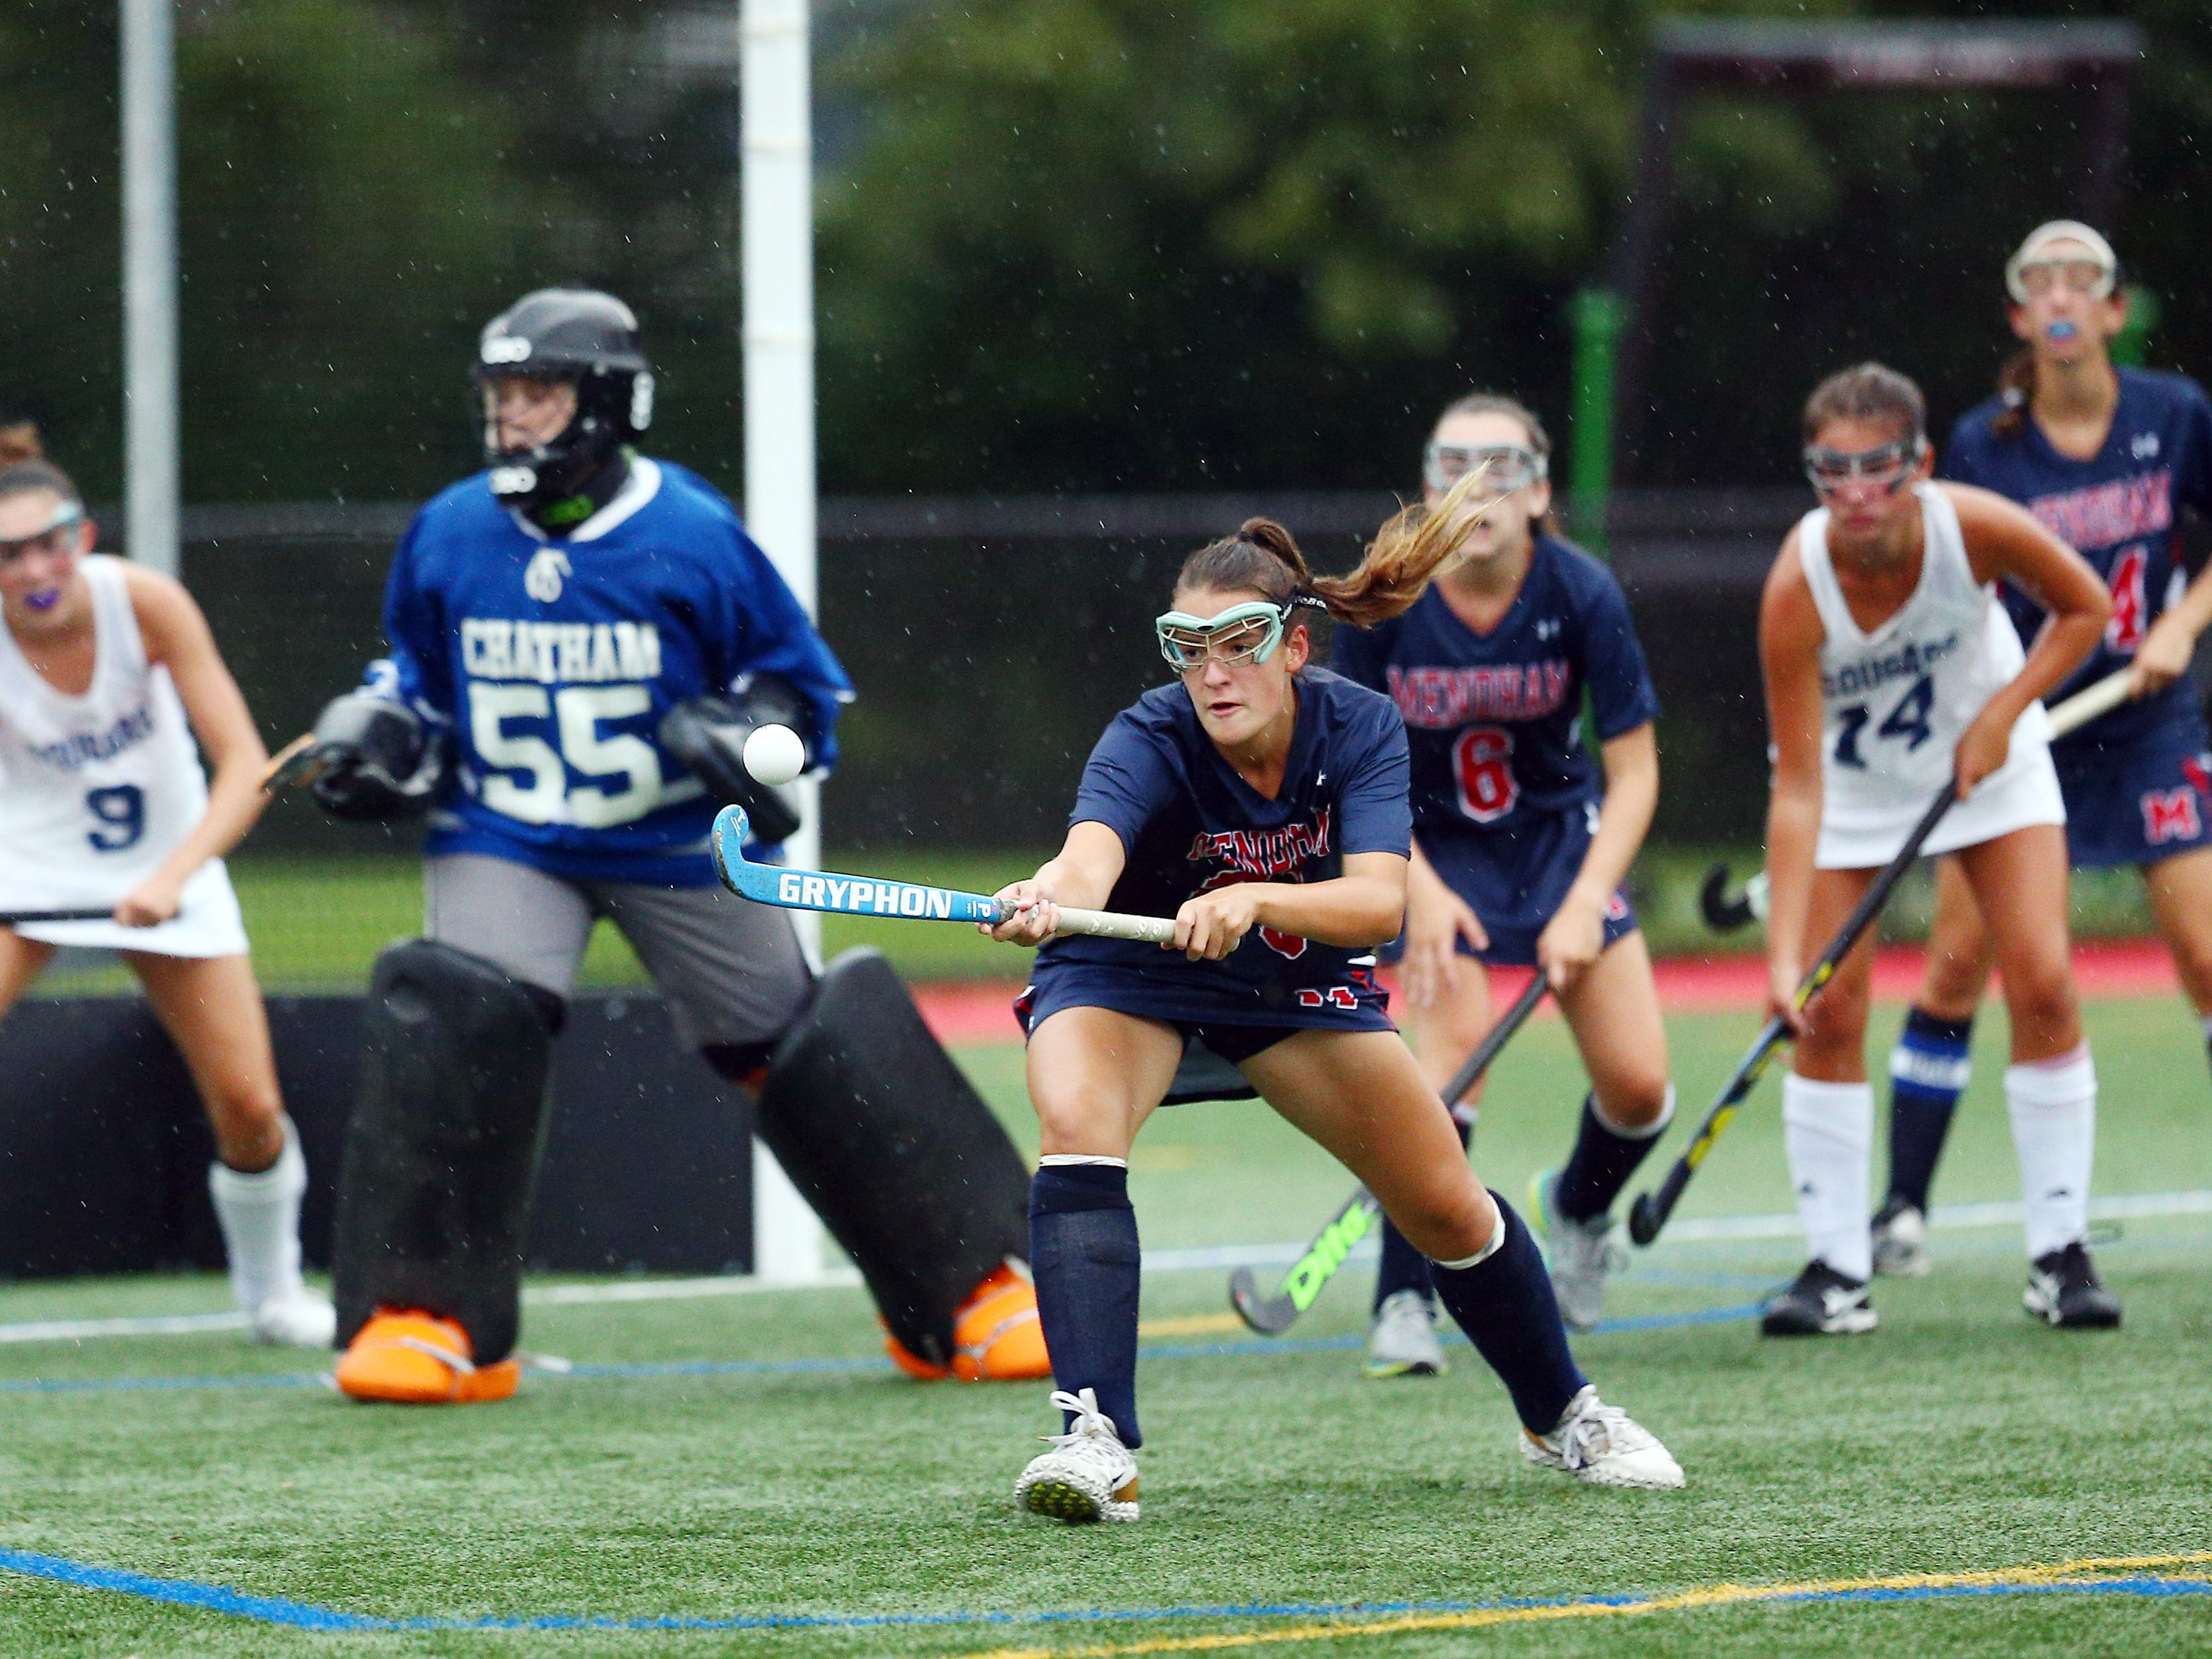 Mendham's Lilly Weeks reaches for the ball vs. Chatham NJAC-American field hockey game at Haas Field in Chatham. September 12, 2018, Chatham, NJ